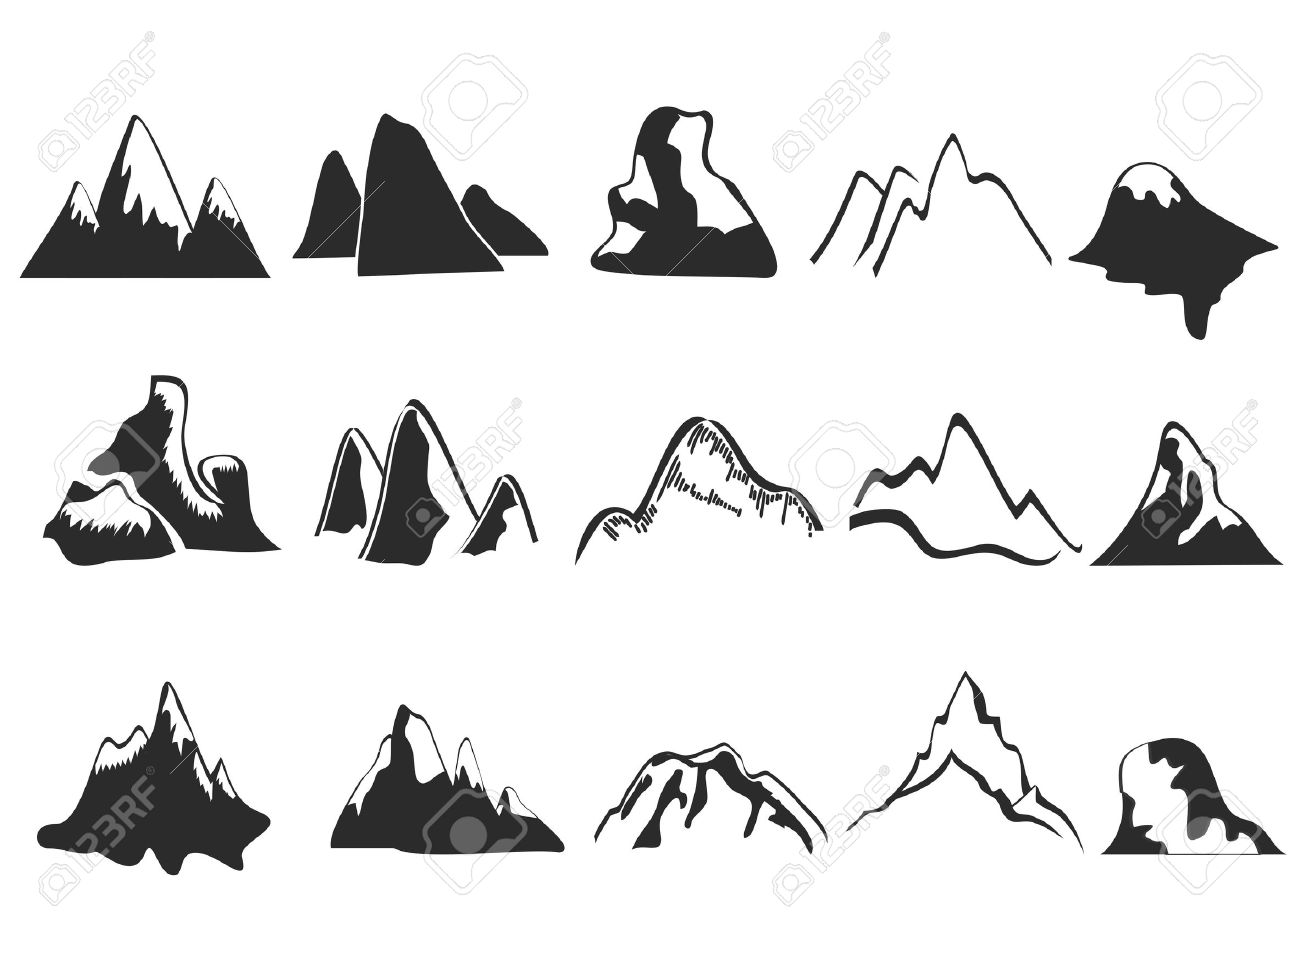 Snowy mountain silhouette clipart.